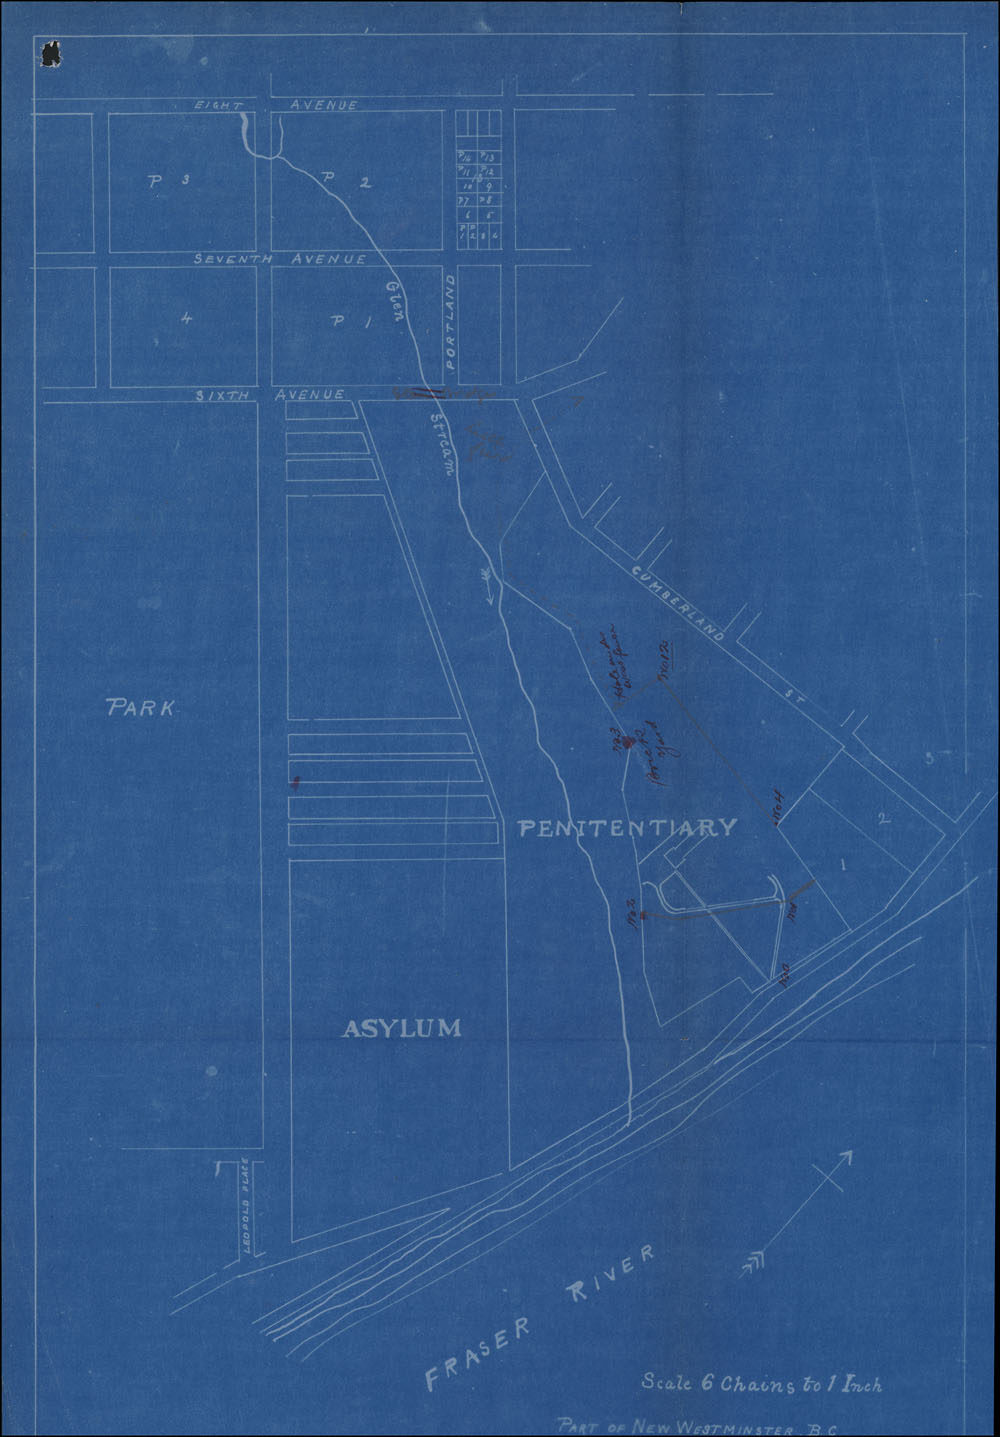 Map on blue background, labelled to show general locations of penitentiary, asylum, and surrounding streets, park, and the Fraser River. Annotations indicate location of fence where Miner escaped, as well as other details of the local area.